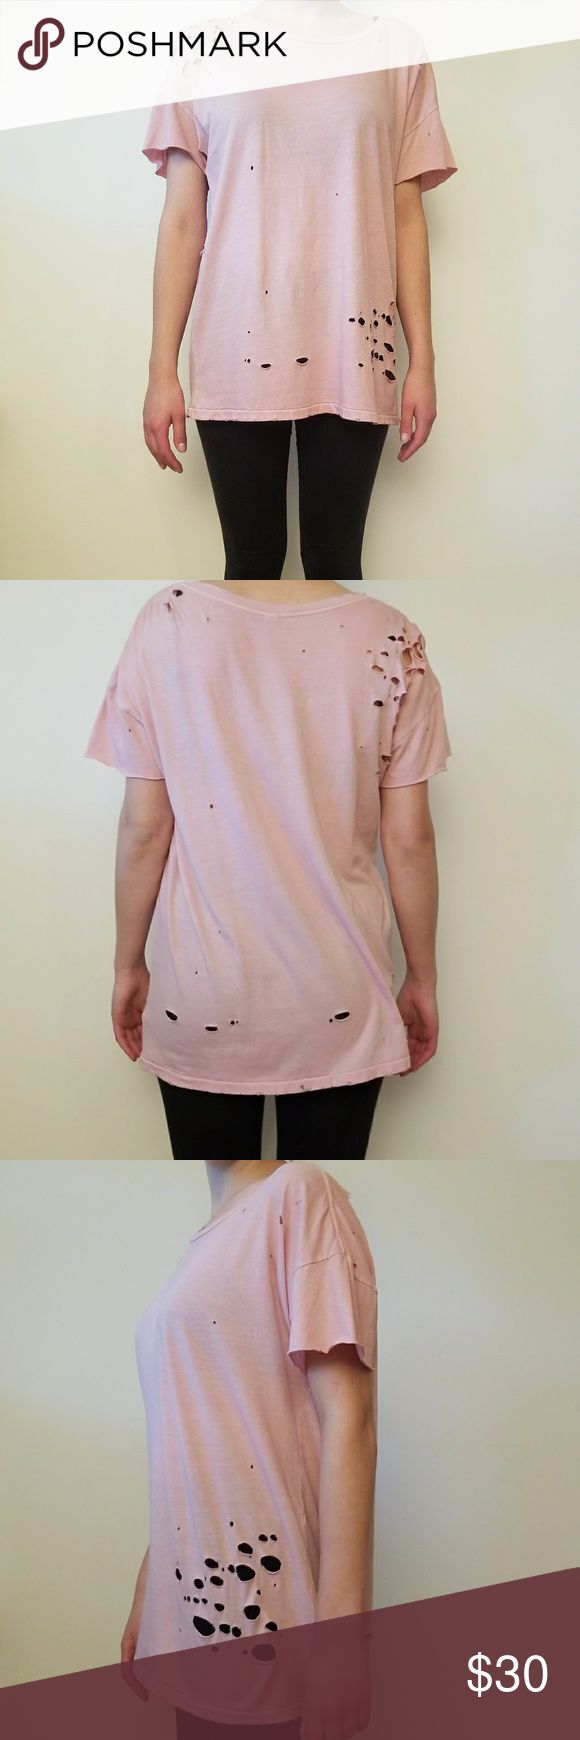 Alternative Apparel Rose Quartz T-shirt with Holes Alternative Apparel Rose Quartz Pigment T-shirt with Holes.    NEVER BEEN WORN NWT   Size: L   Color: Rose Quartz Pigment   Adorable with leggings and converse or high tops.  Also goes great with jeans and boots for fall! Alternative Apparel Tops